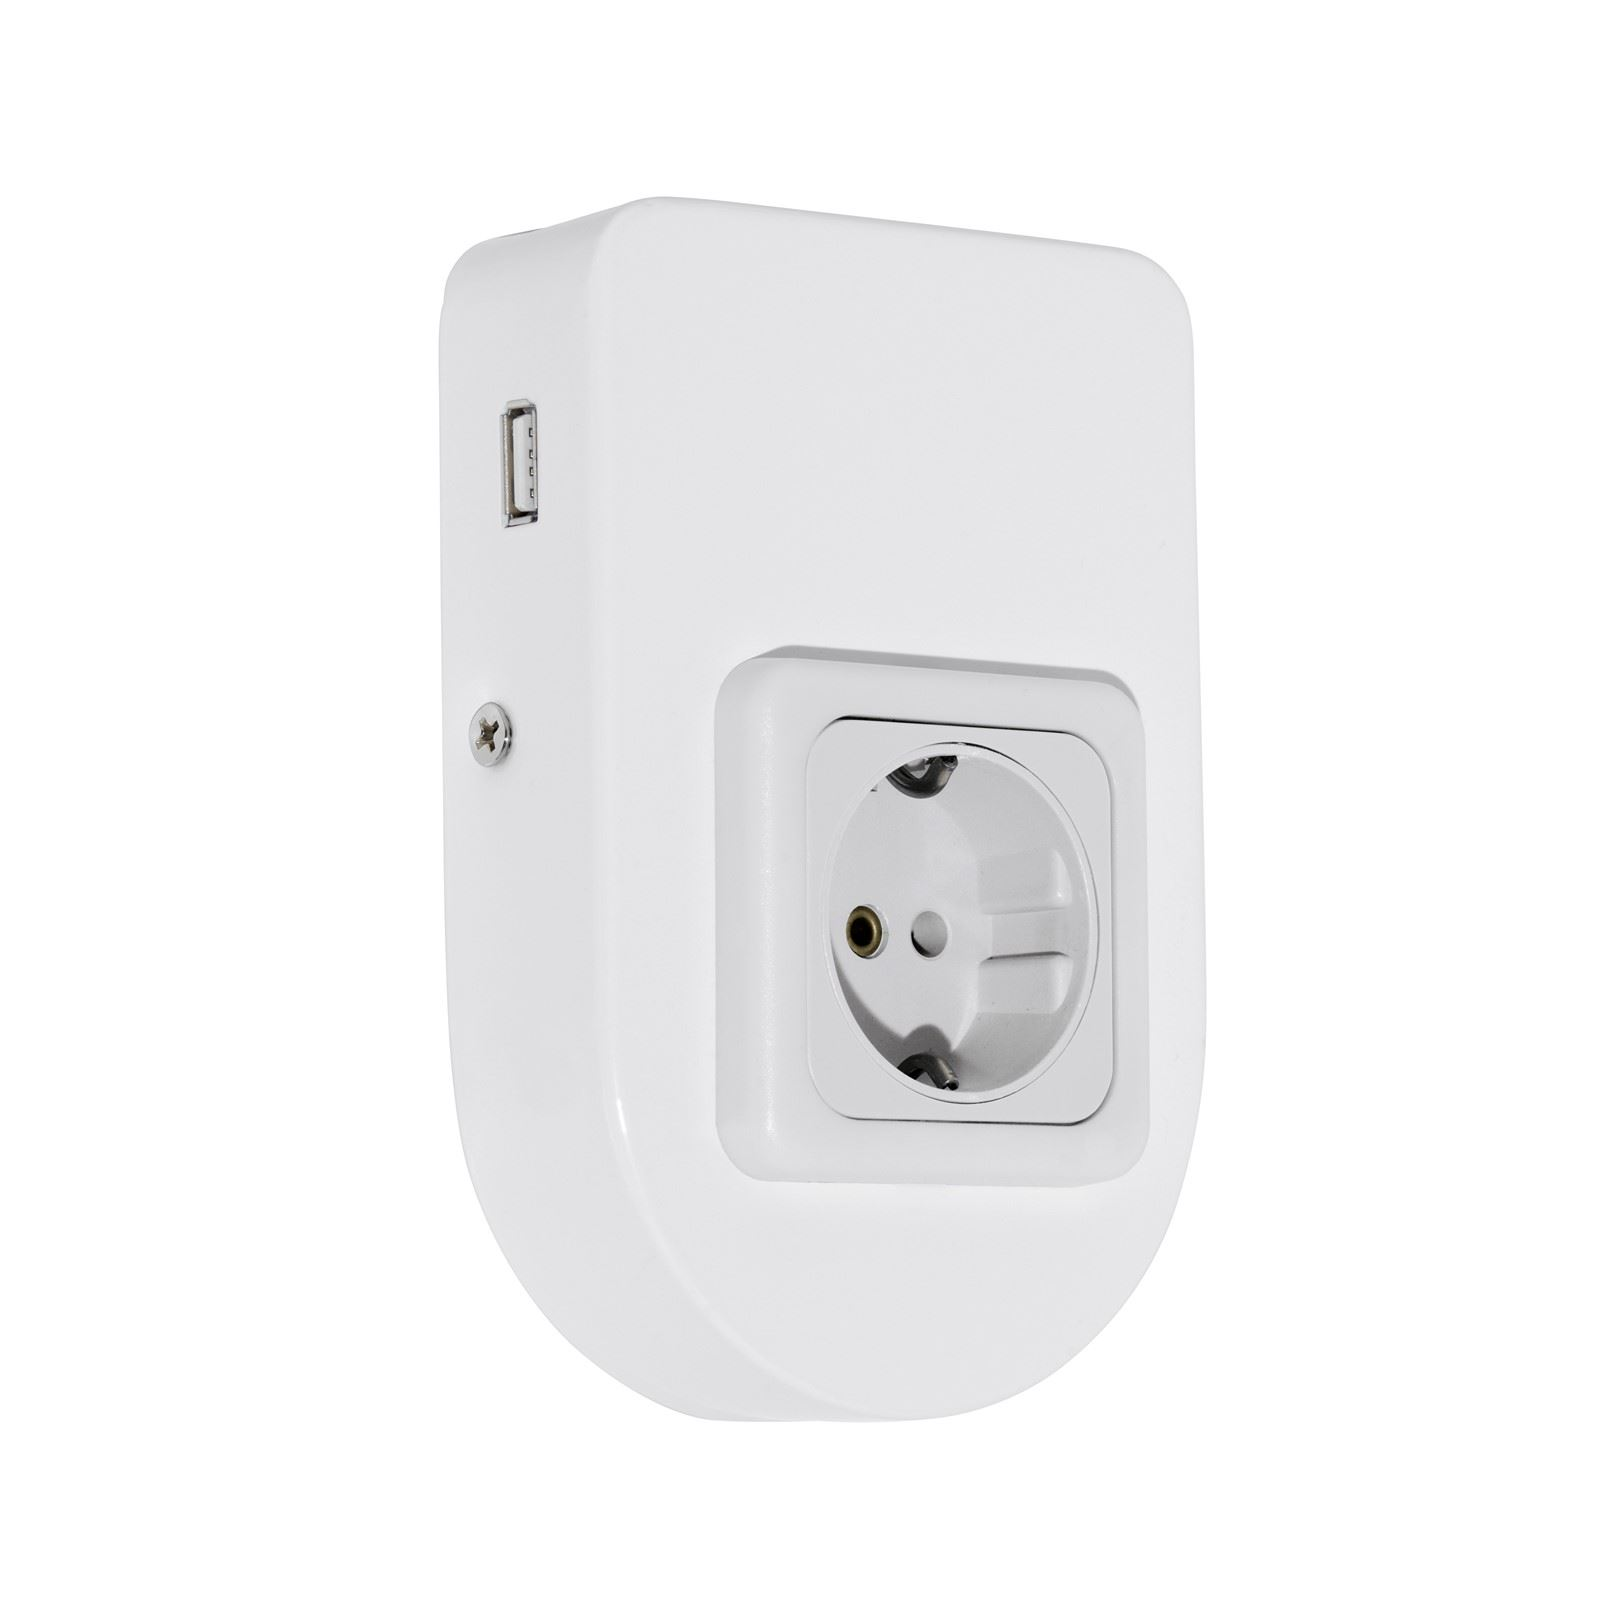 Taxano Lighting Accessory Outlet Socket Usb Round Steel White